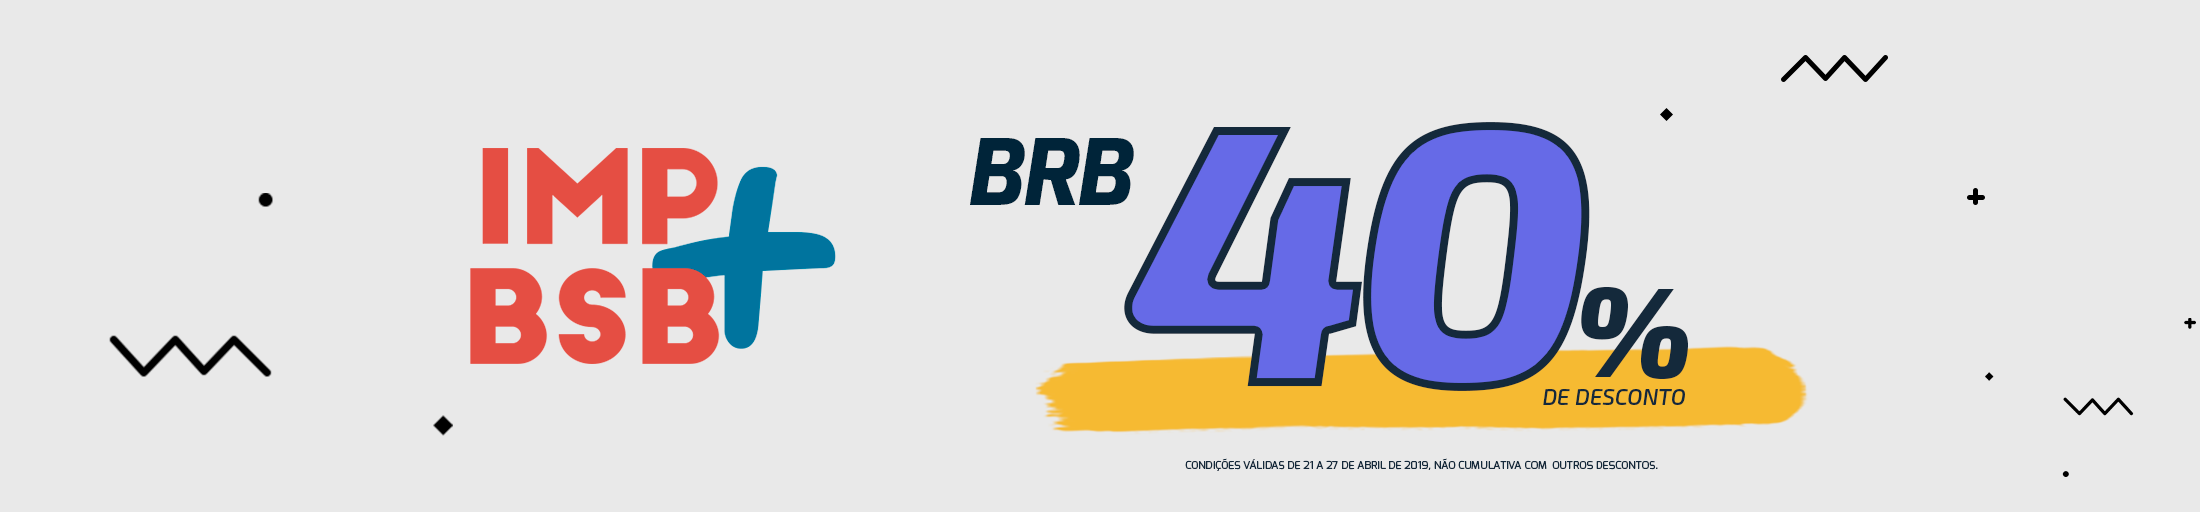 BANNER-SITE-BRB